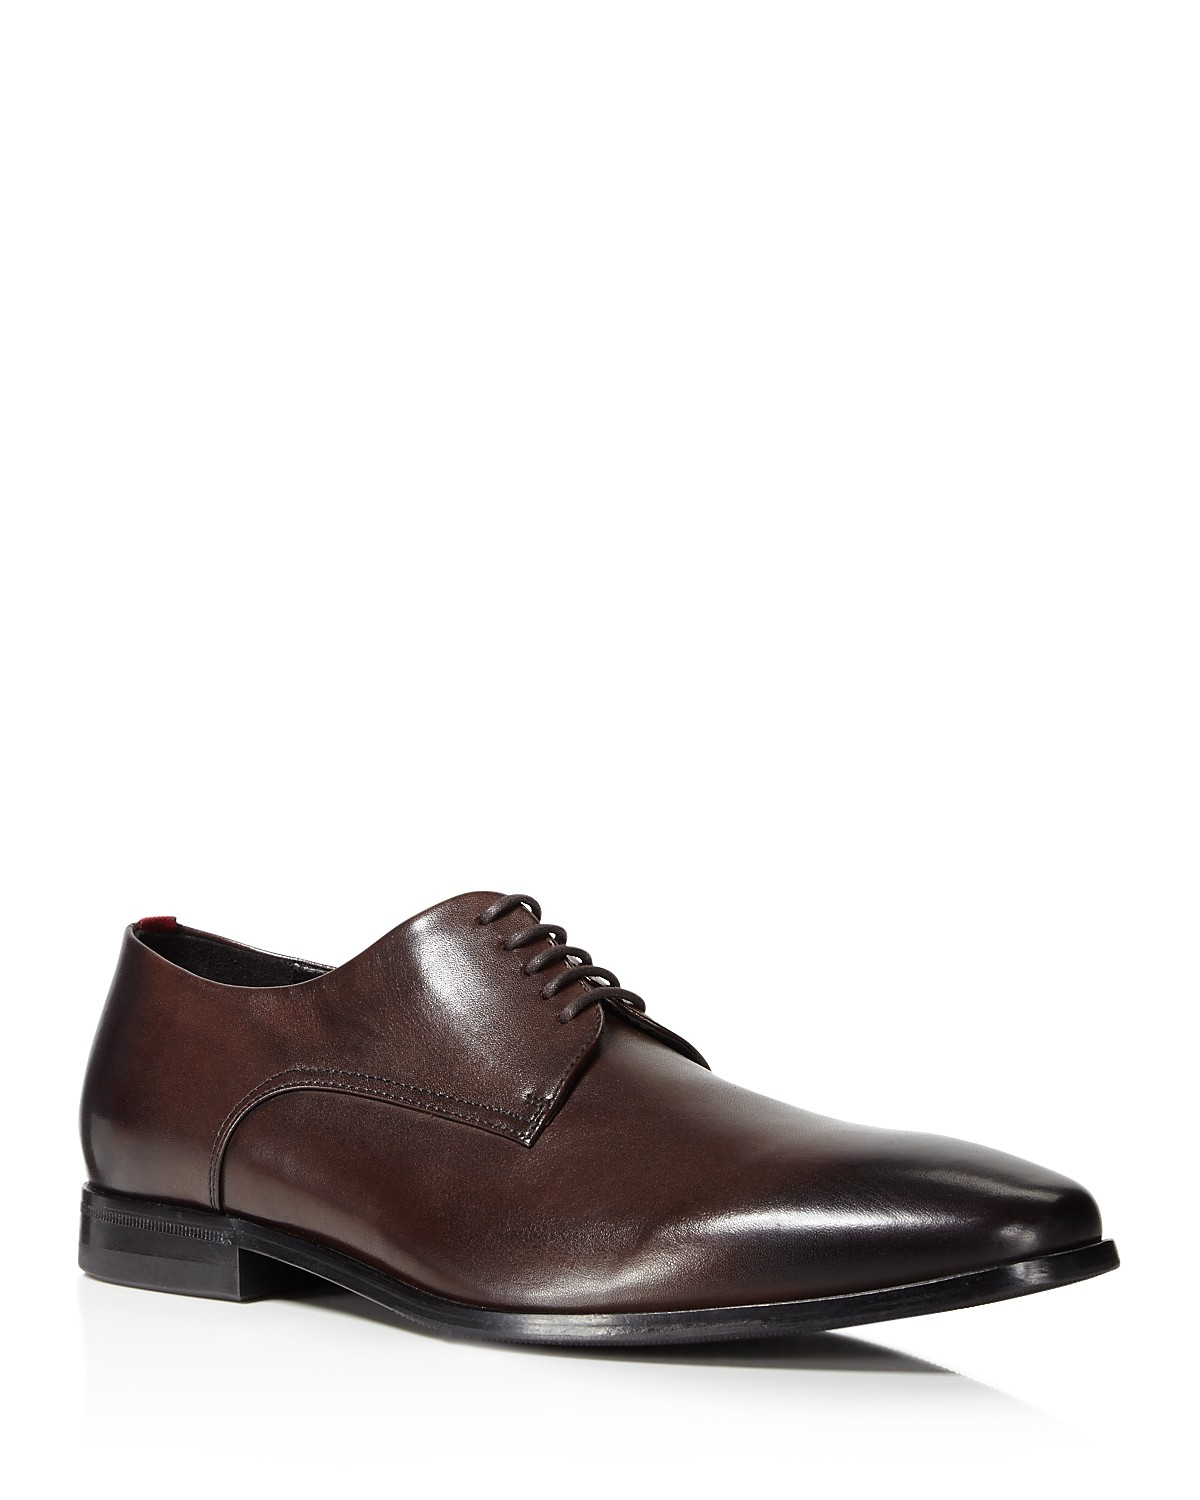 HUGO BOSS Highline Oxford Dress Shoes - 100% Exclusive YV7fHy